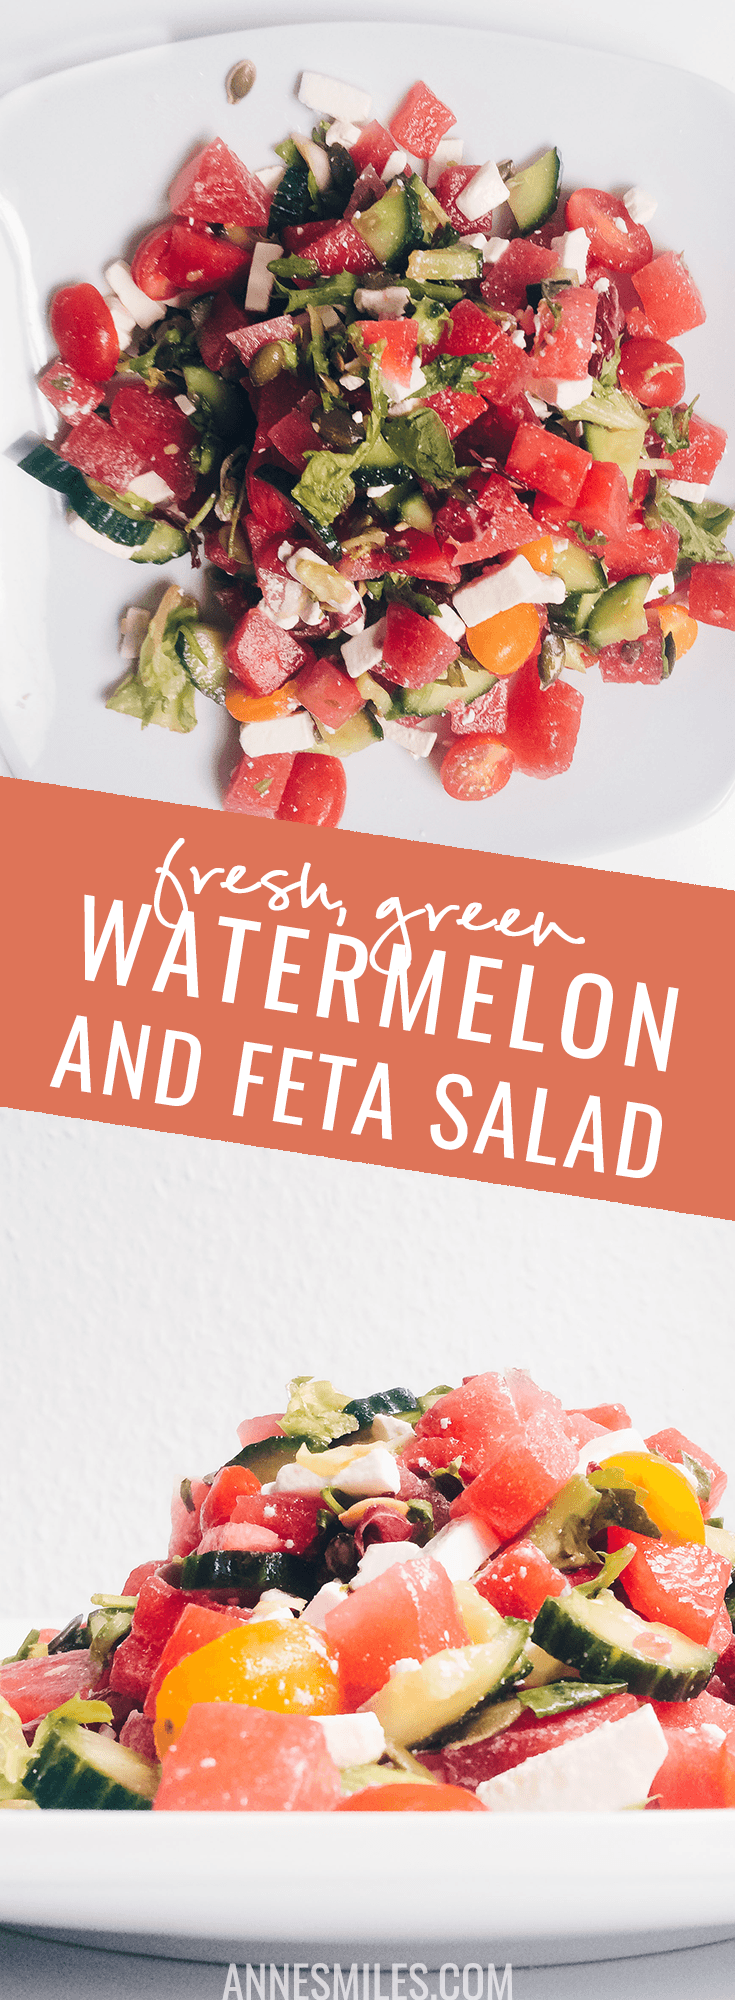 This fresh, green, salad is perfect for a light dinner, so tasty! #watermelon #recipes #healthyrecipe #salad